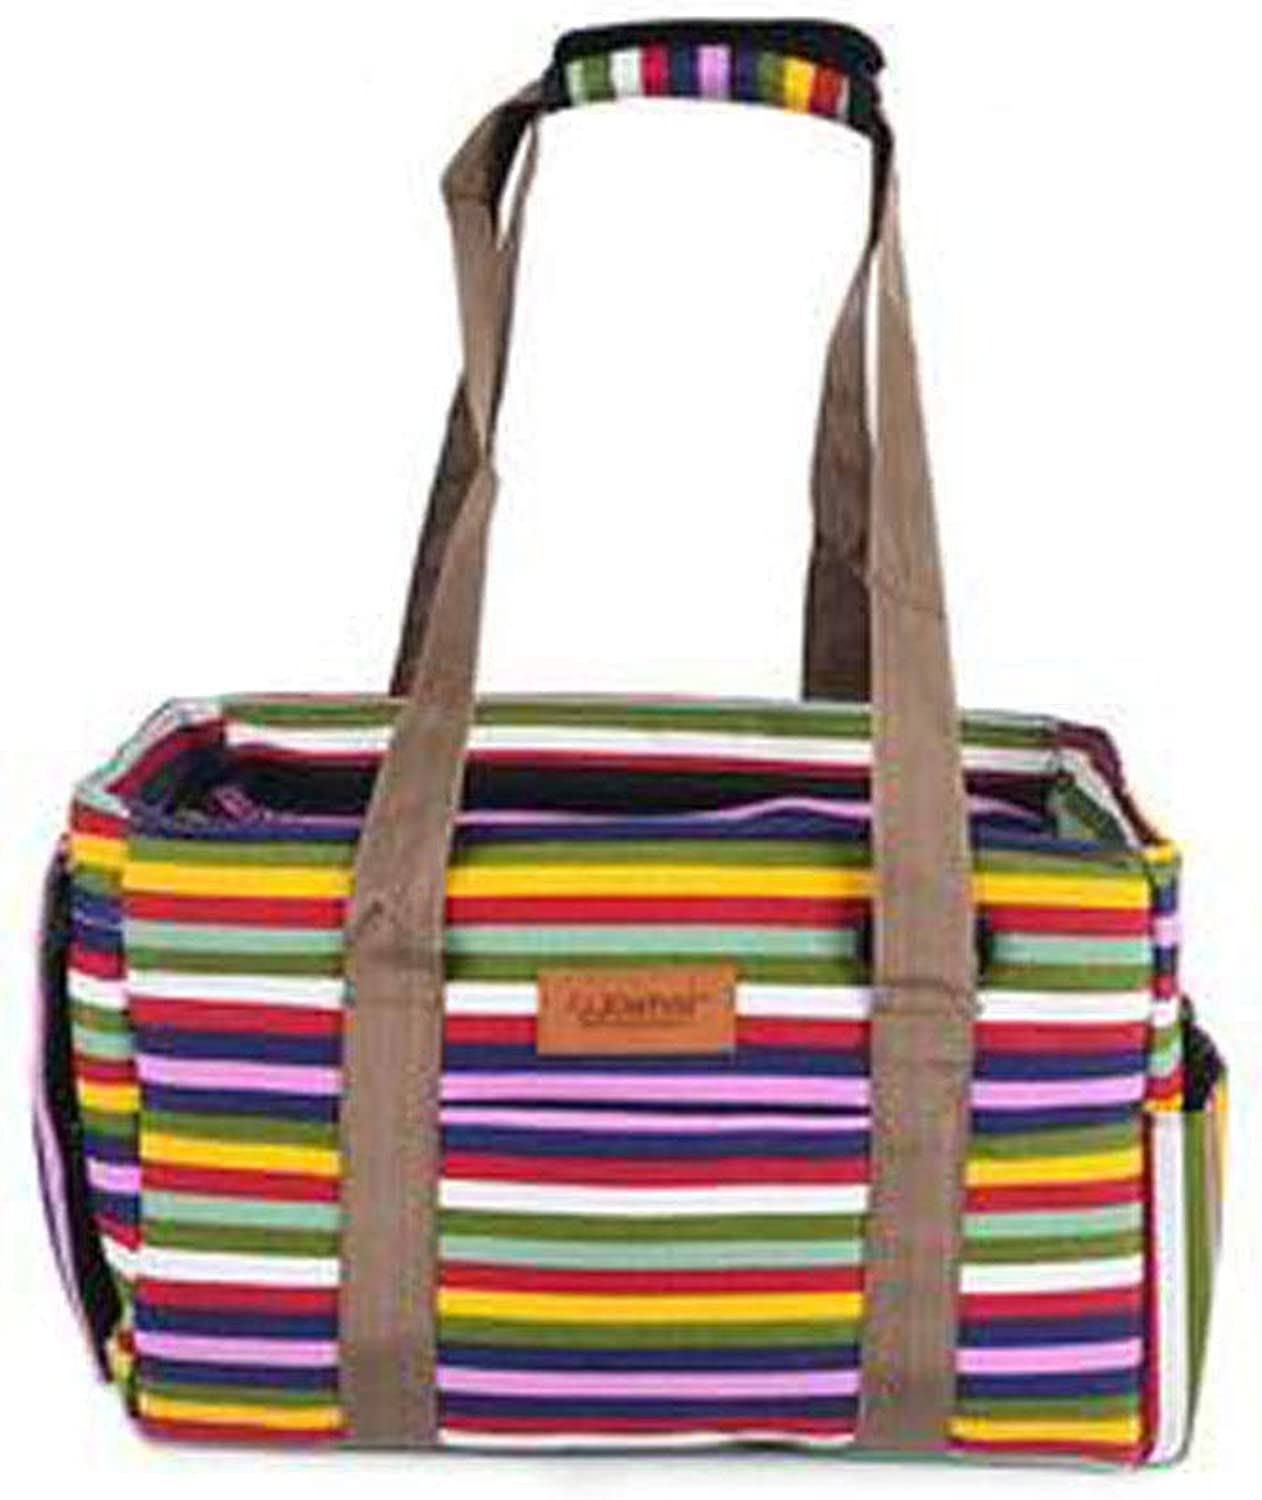 Guyuexuan Pet Carrier, Airline Approved Soft Animal Carrier, Portable Soft Air Travel Bag, Best for Small and Medium Dogs and Cats Pet Travel Essentials (color   Rainbow Stripes)